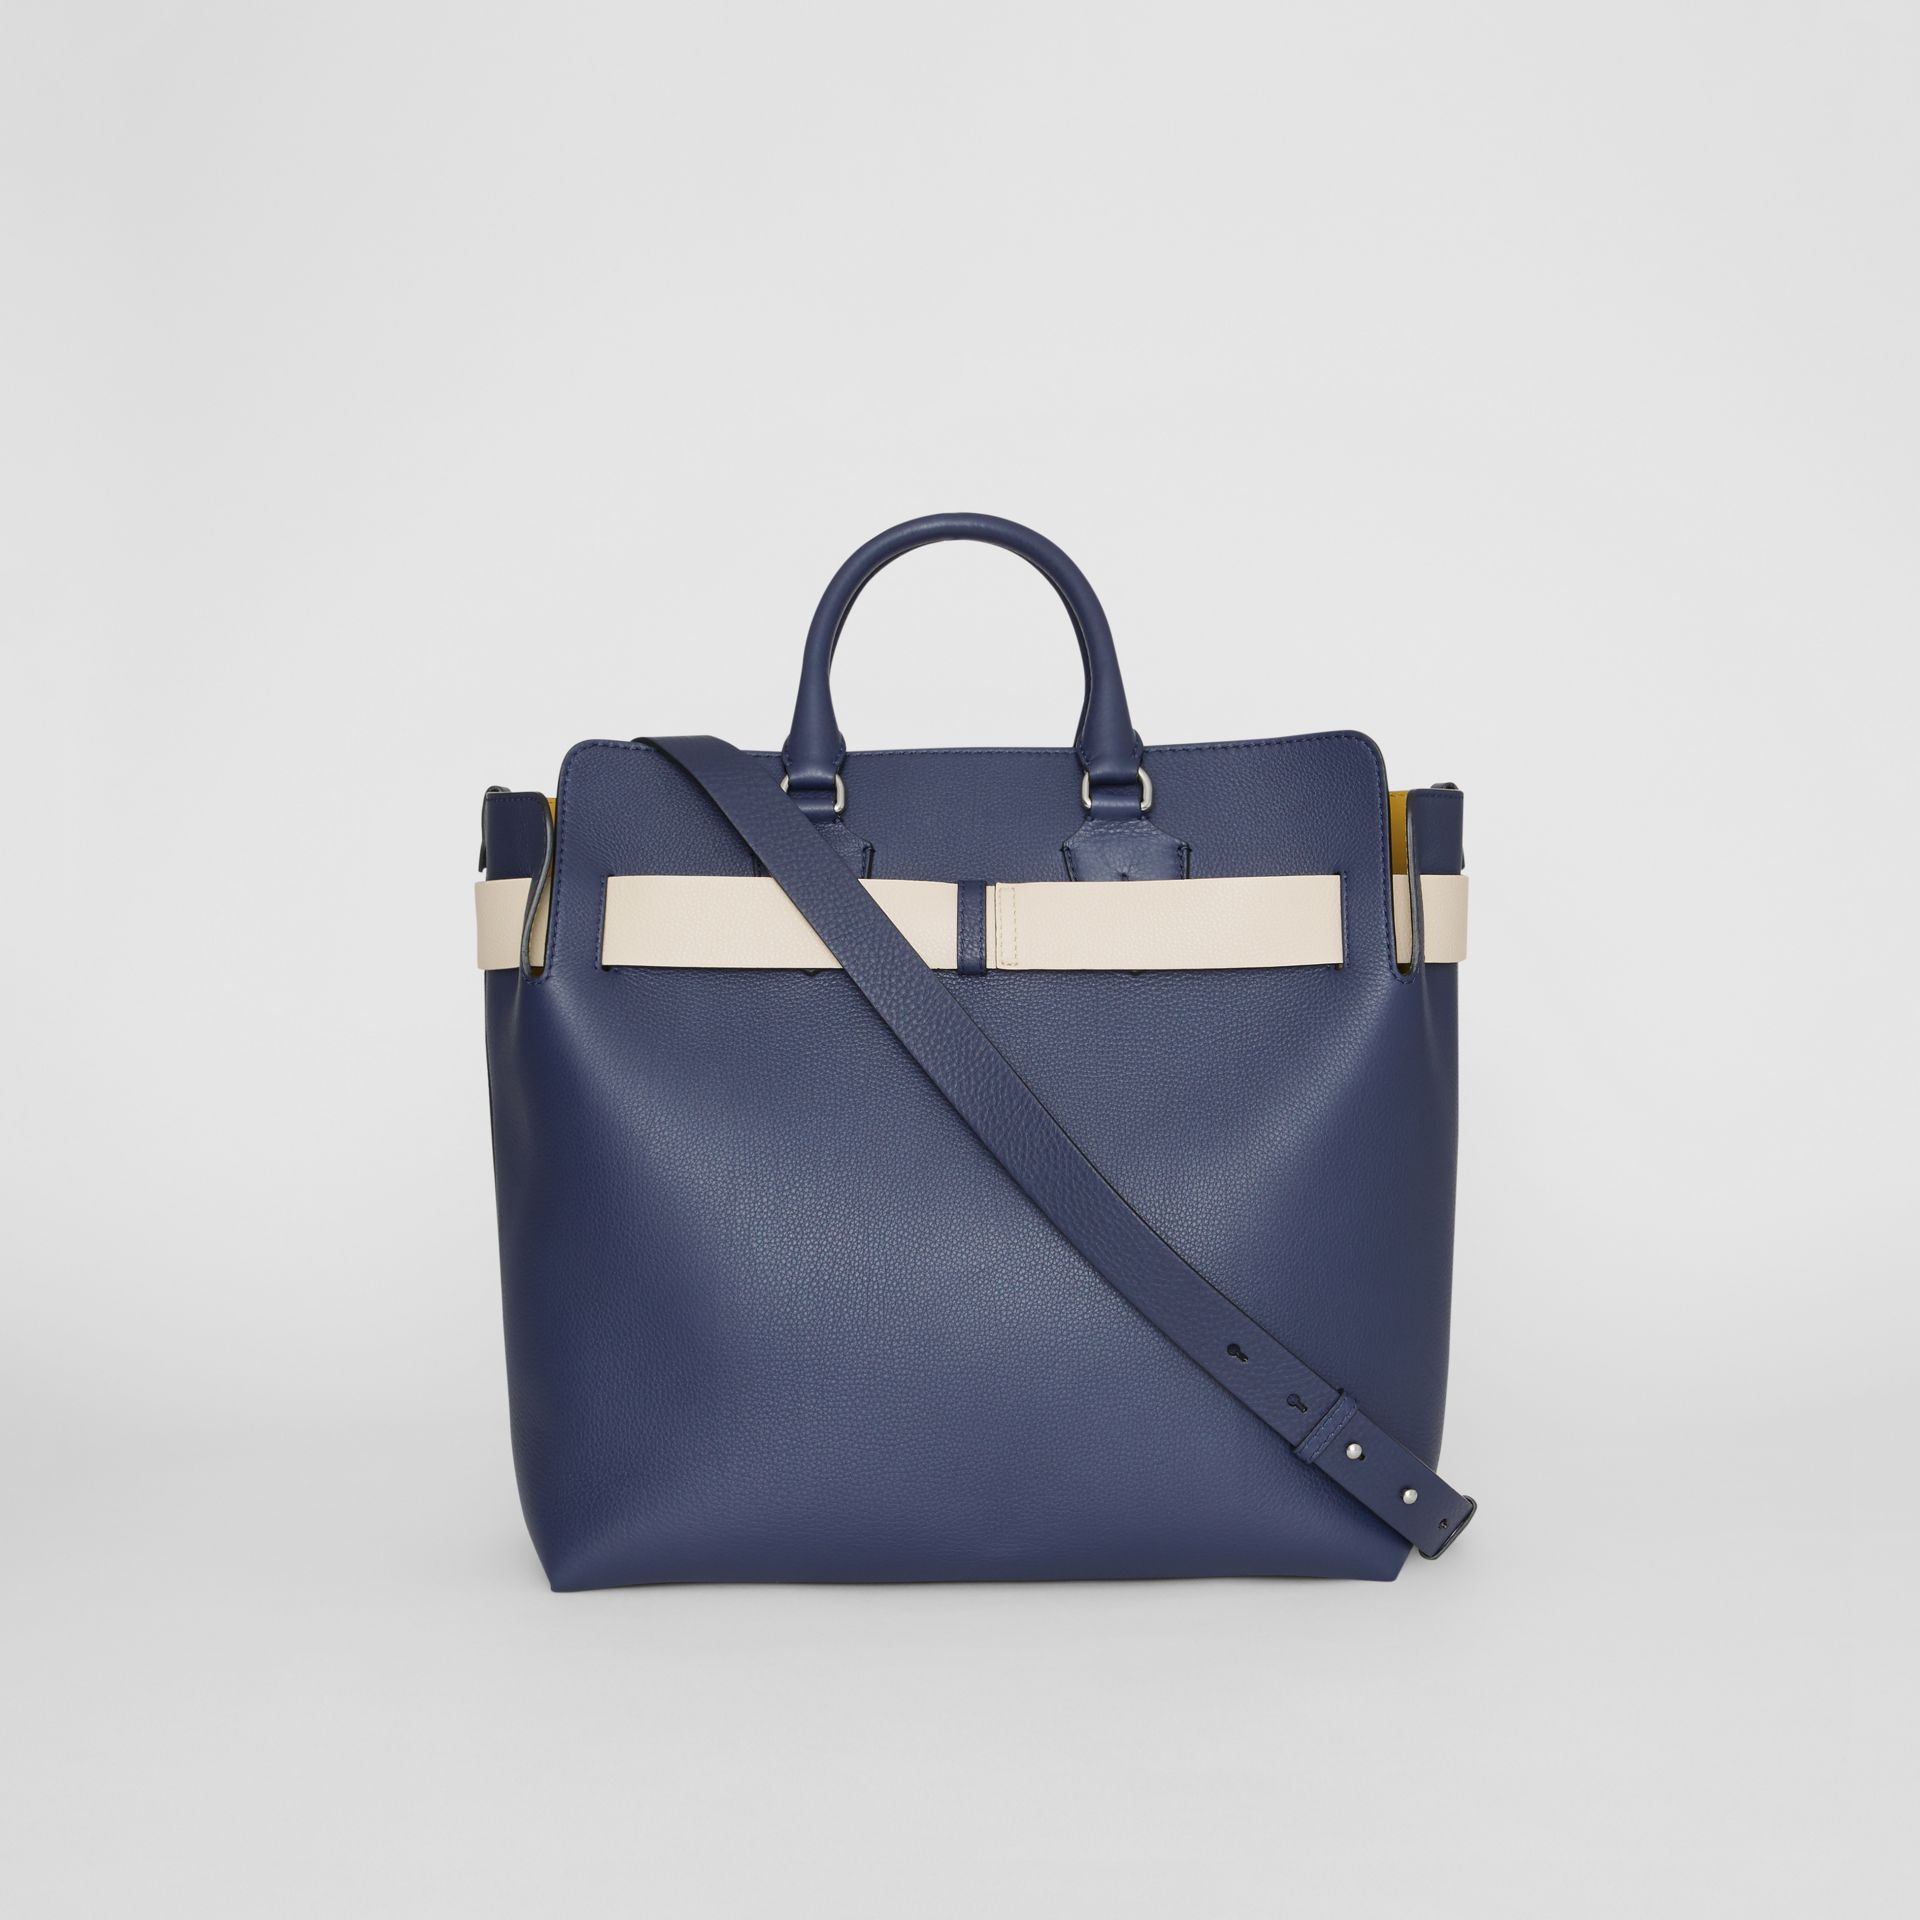 Grand sac The Belt en cuir (Bleu Régence) - Femme | Burberry - photo de la galerie 9